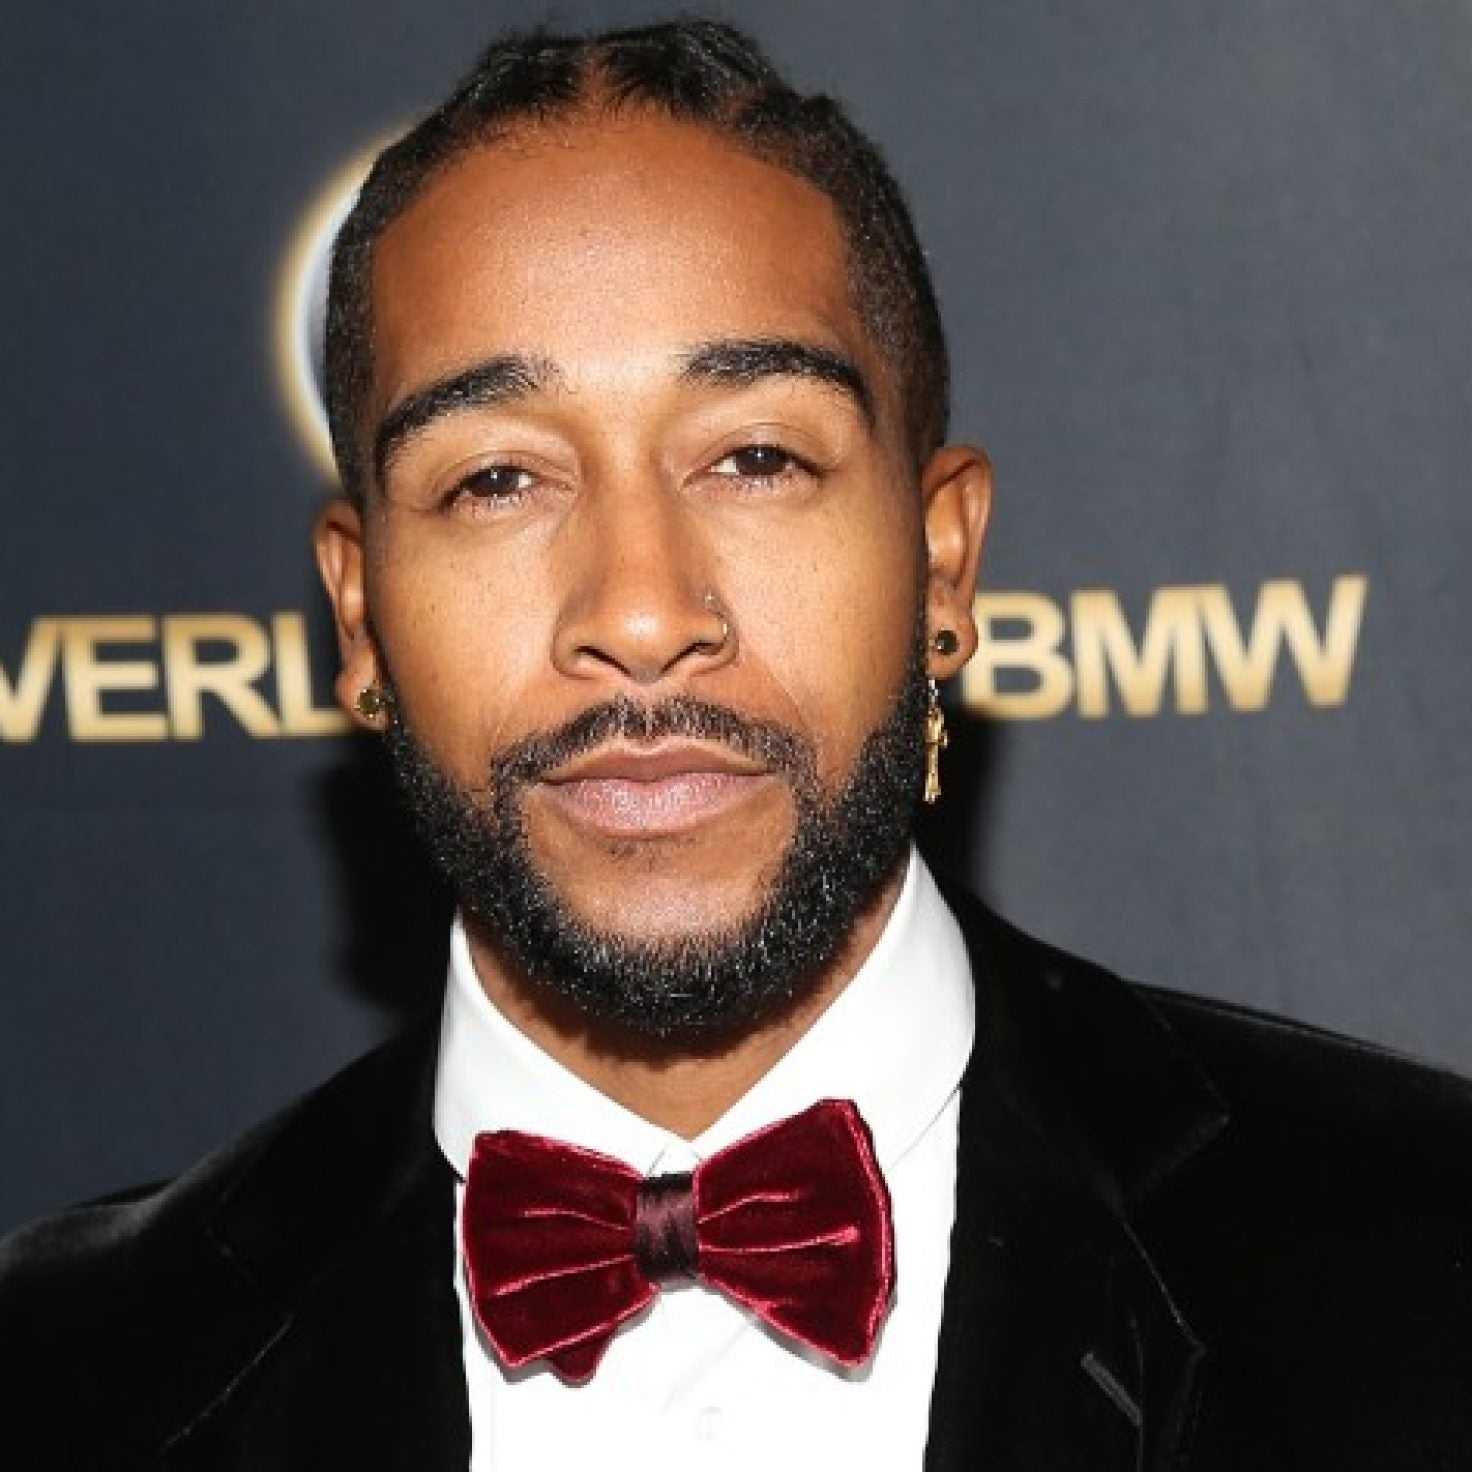 Omarion Shares The Product That Keeps His Skin As Glowing And Unbothered As His Swag